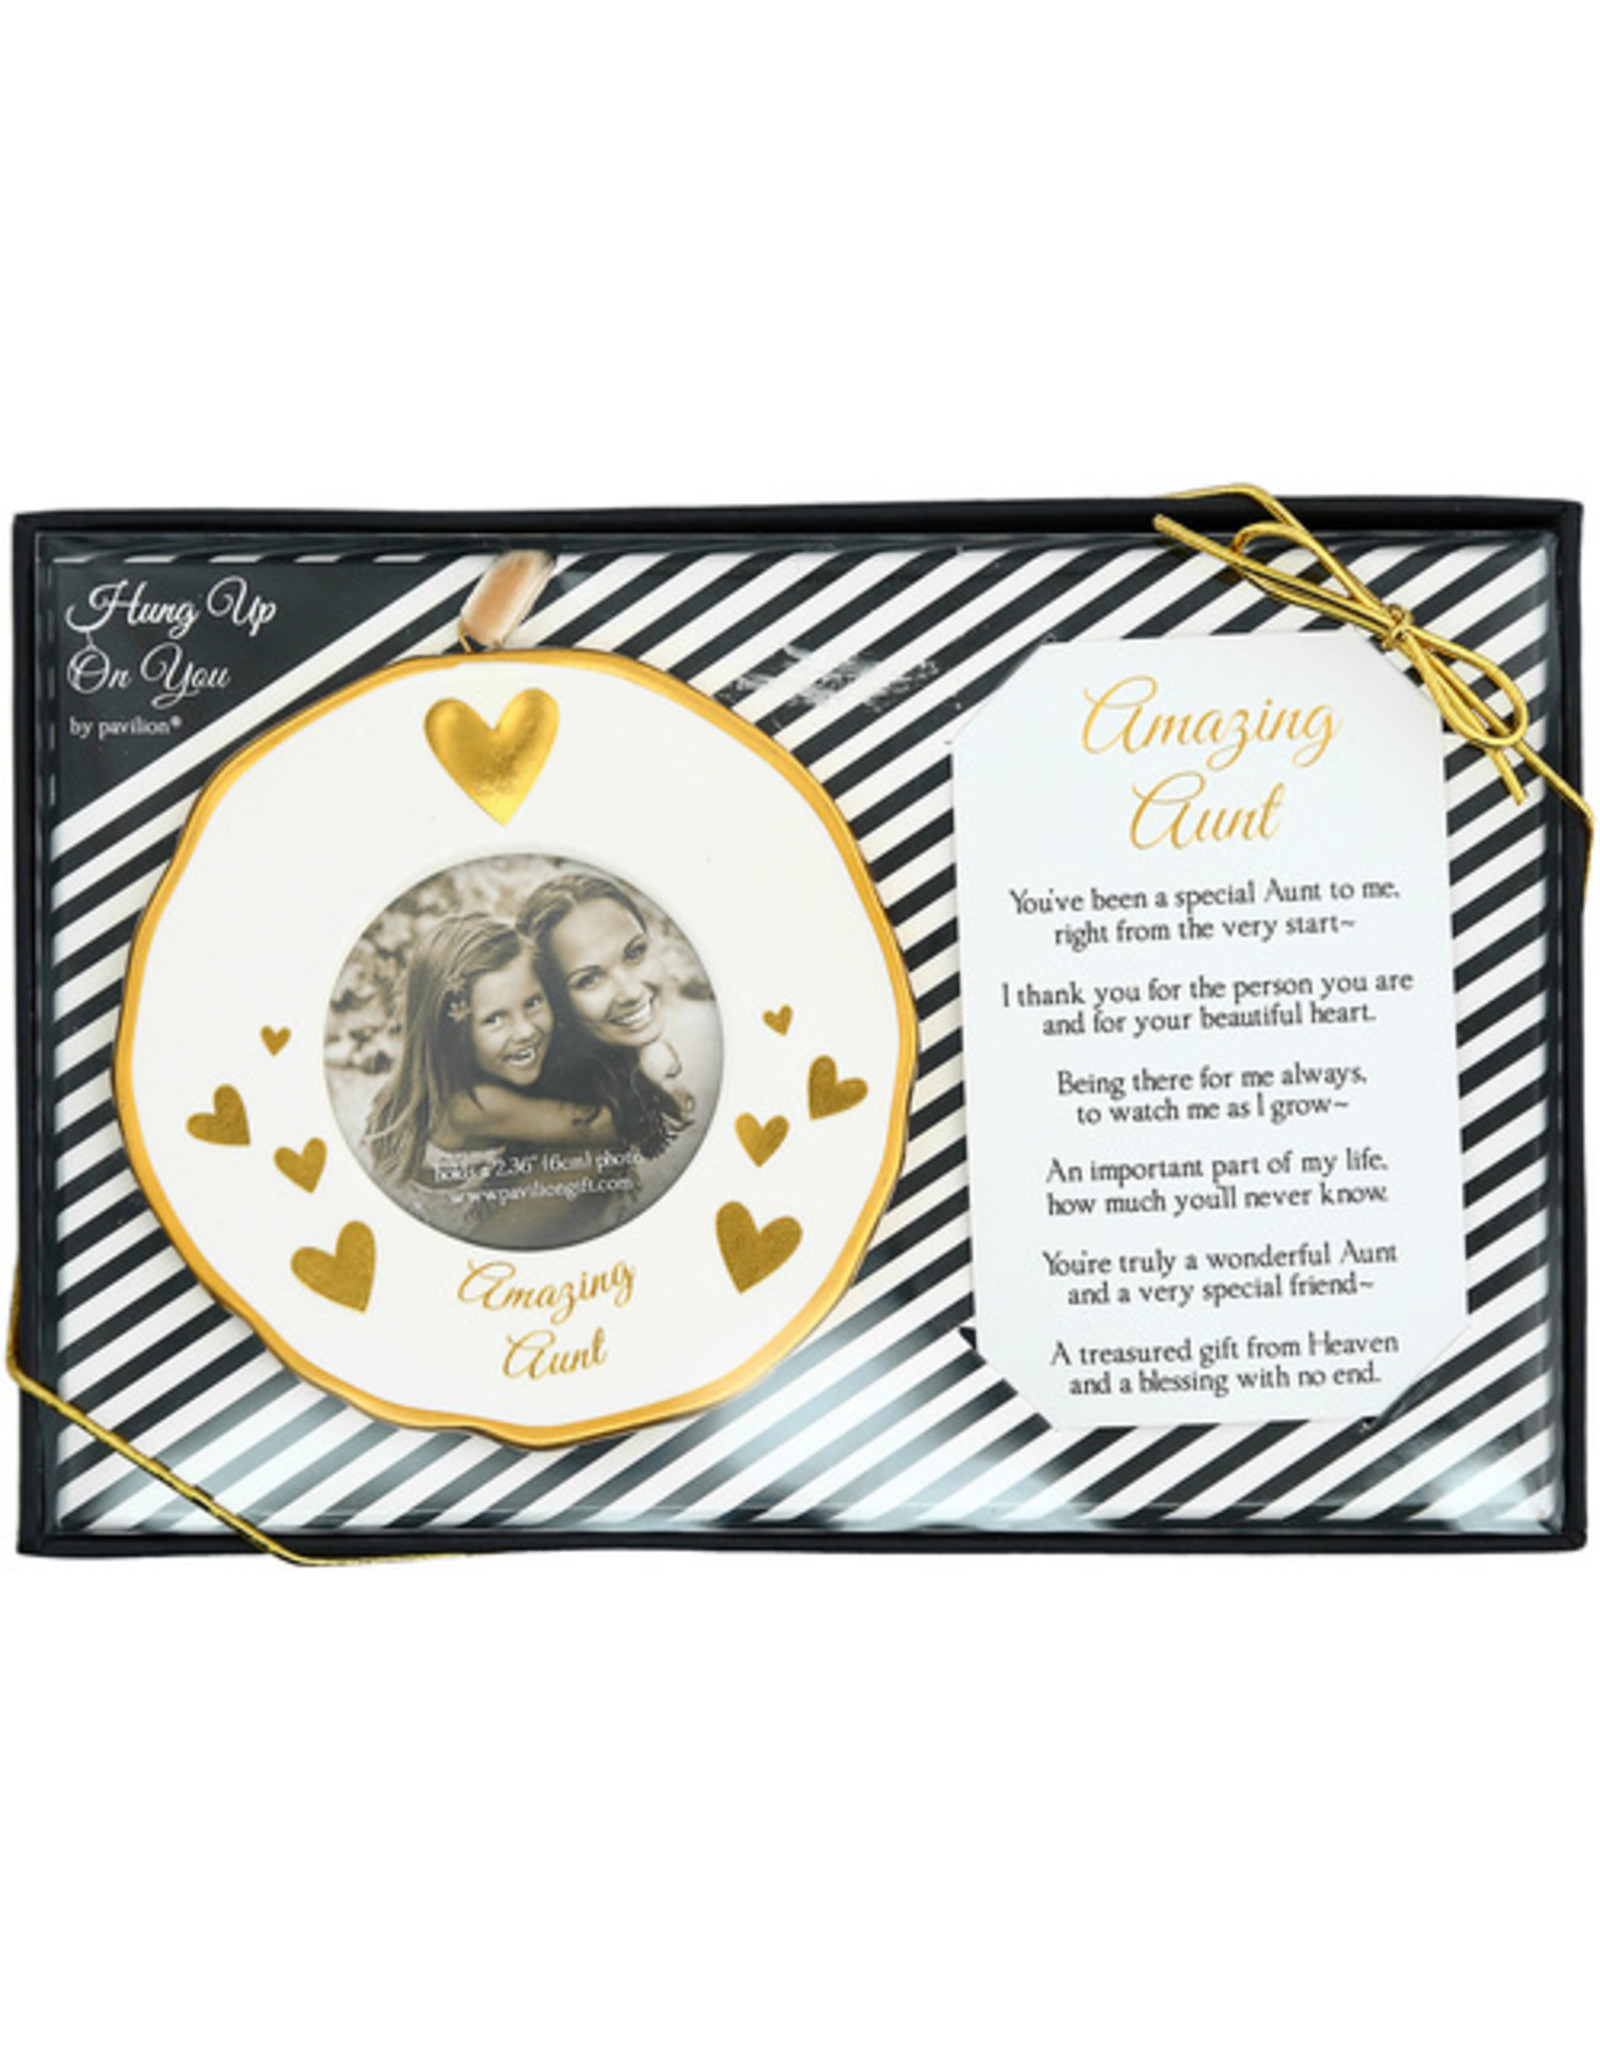 Pavilion Gift AUNT PHOTO FRAME ORNAMENT